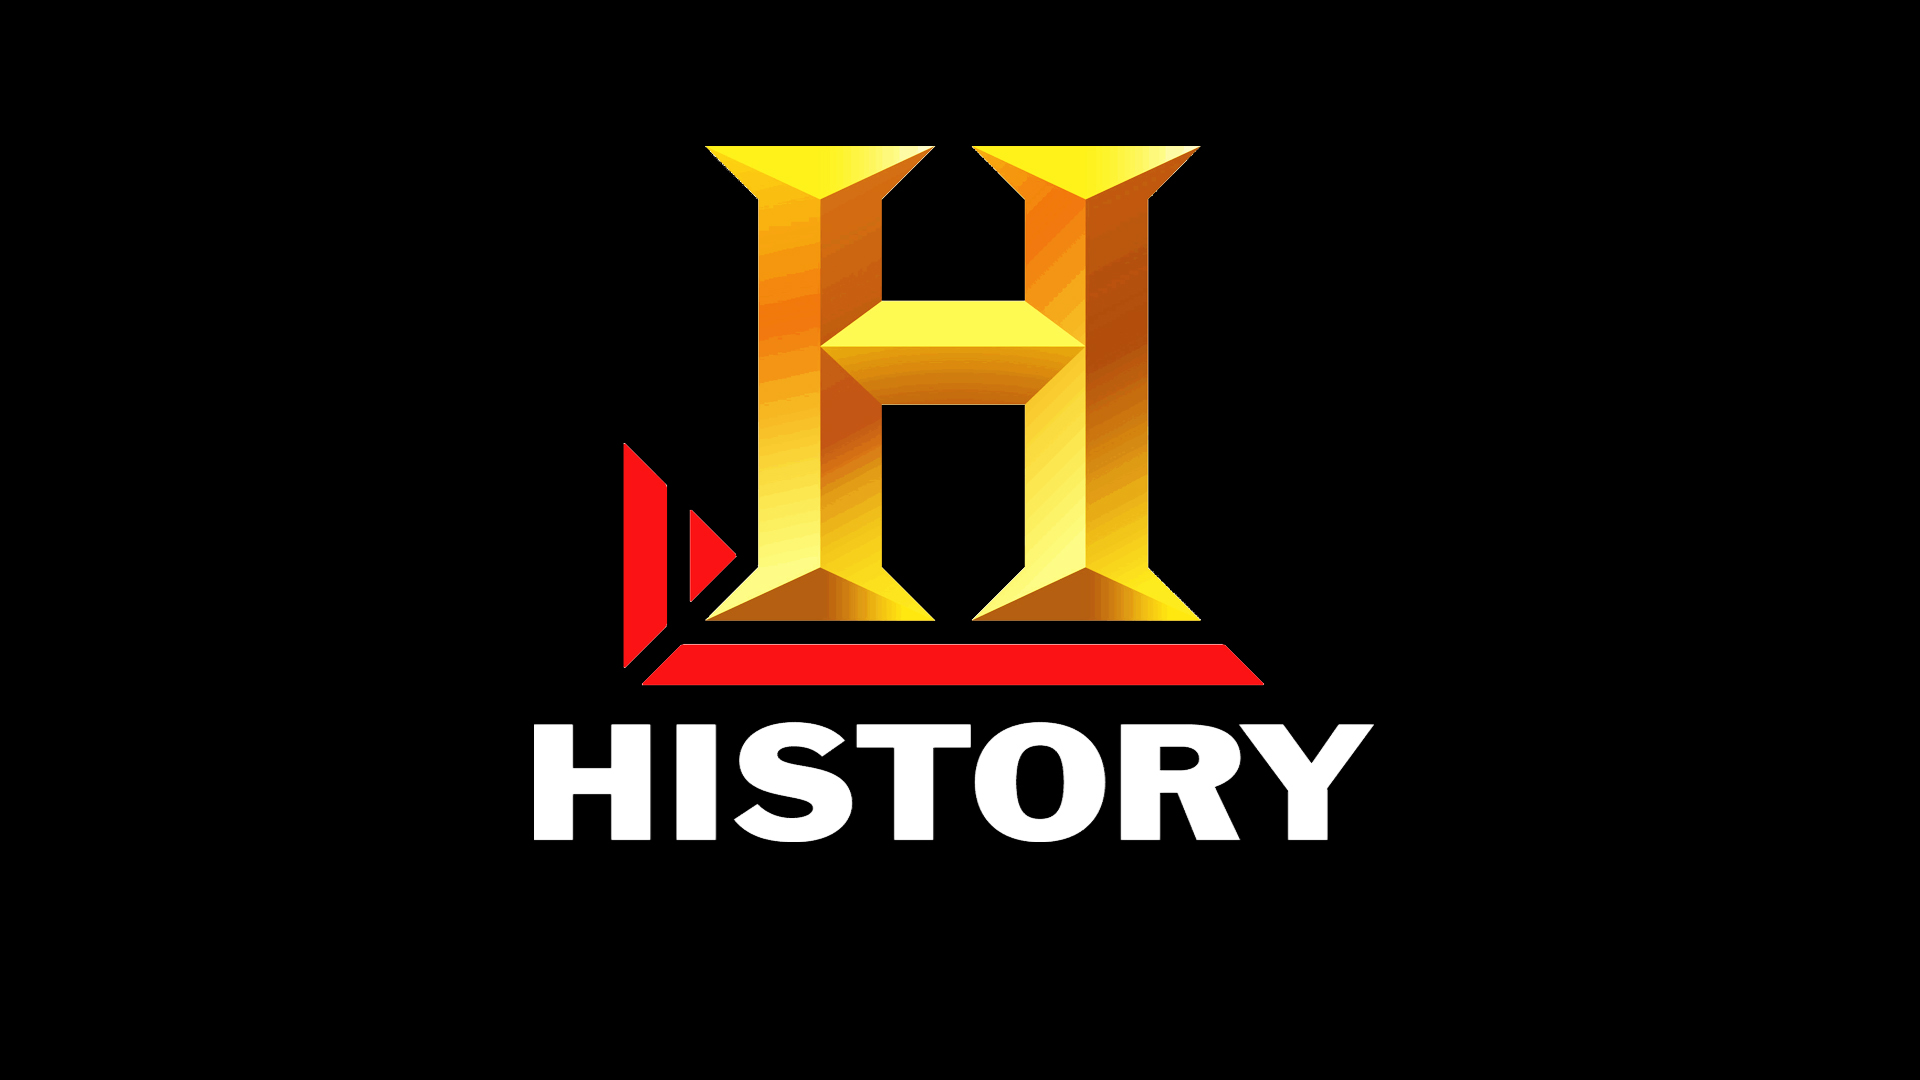 The History Channel Black logo wallpaper | 1920x1080 ...